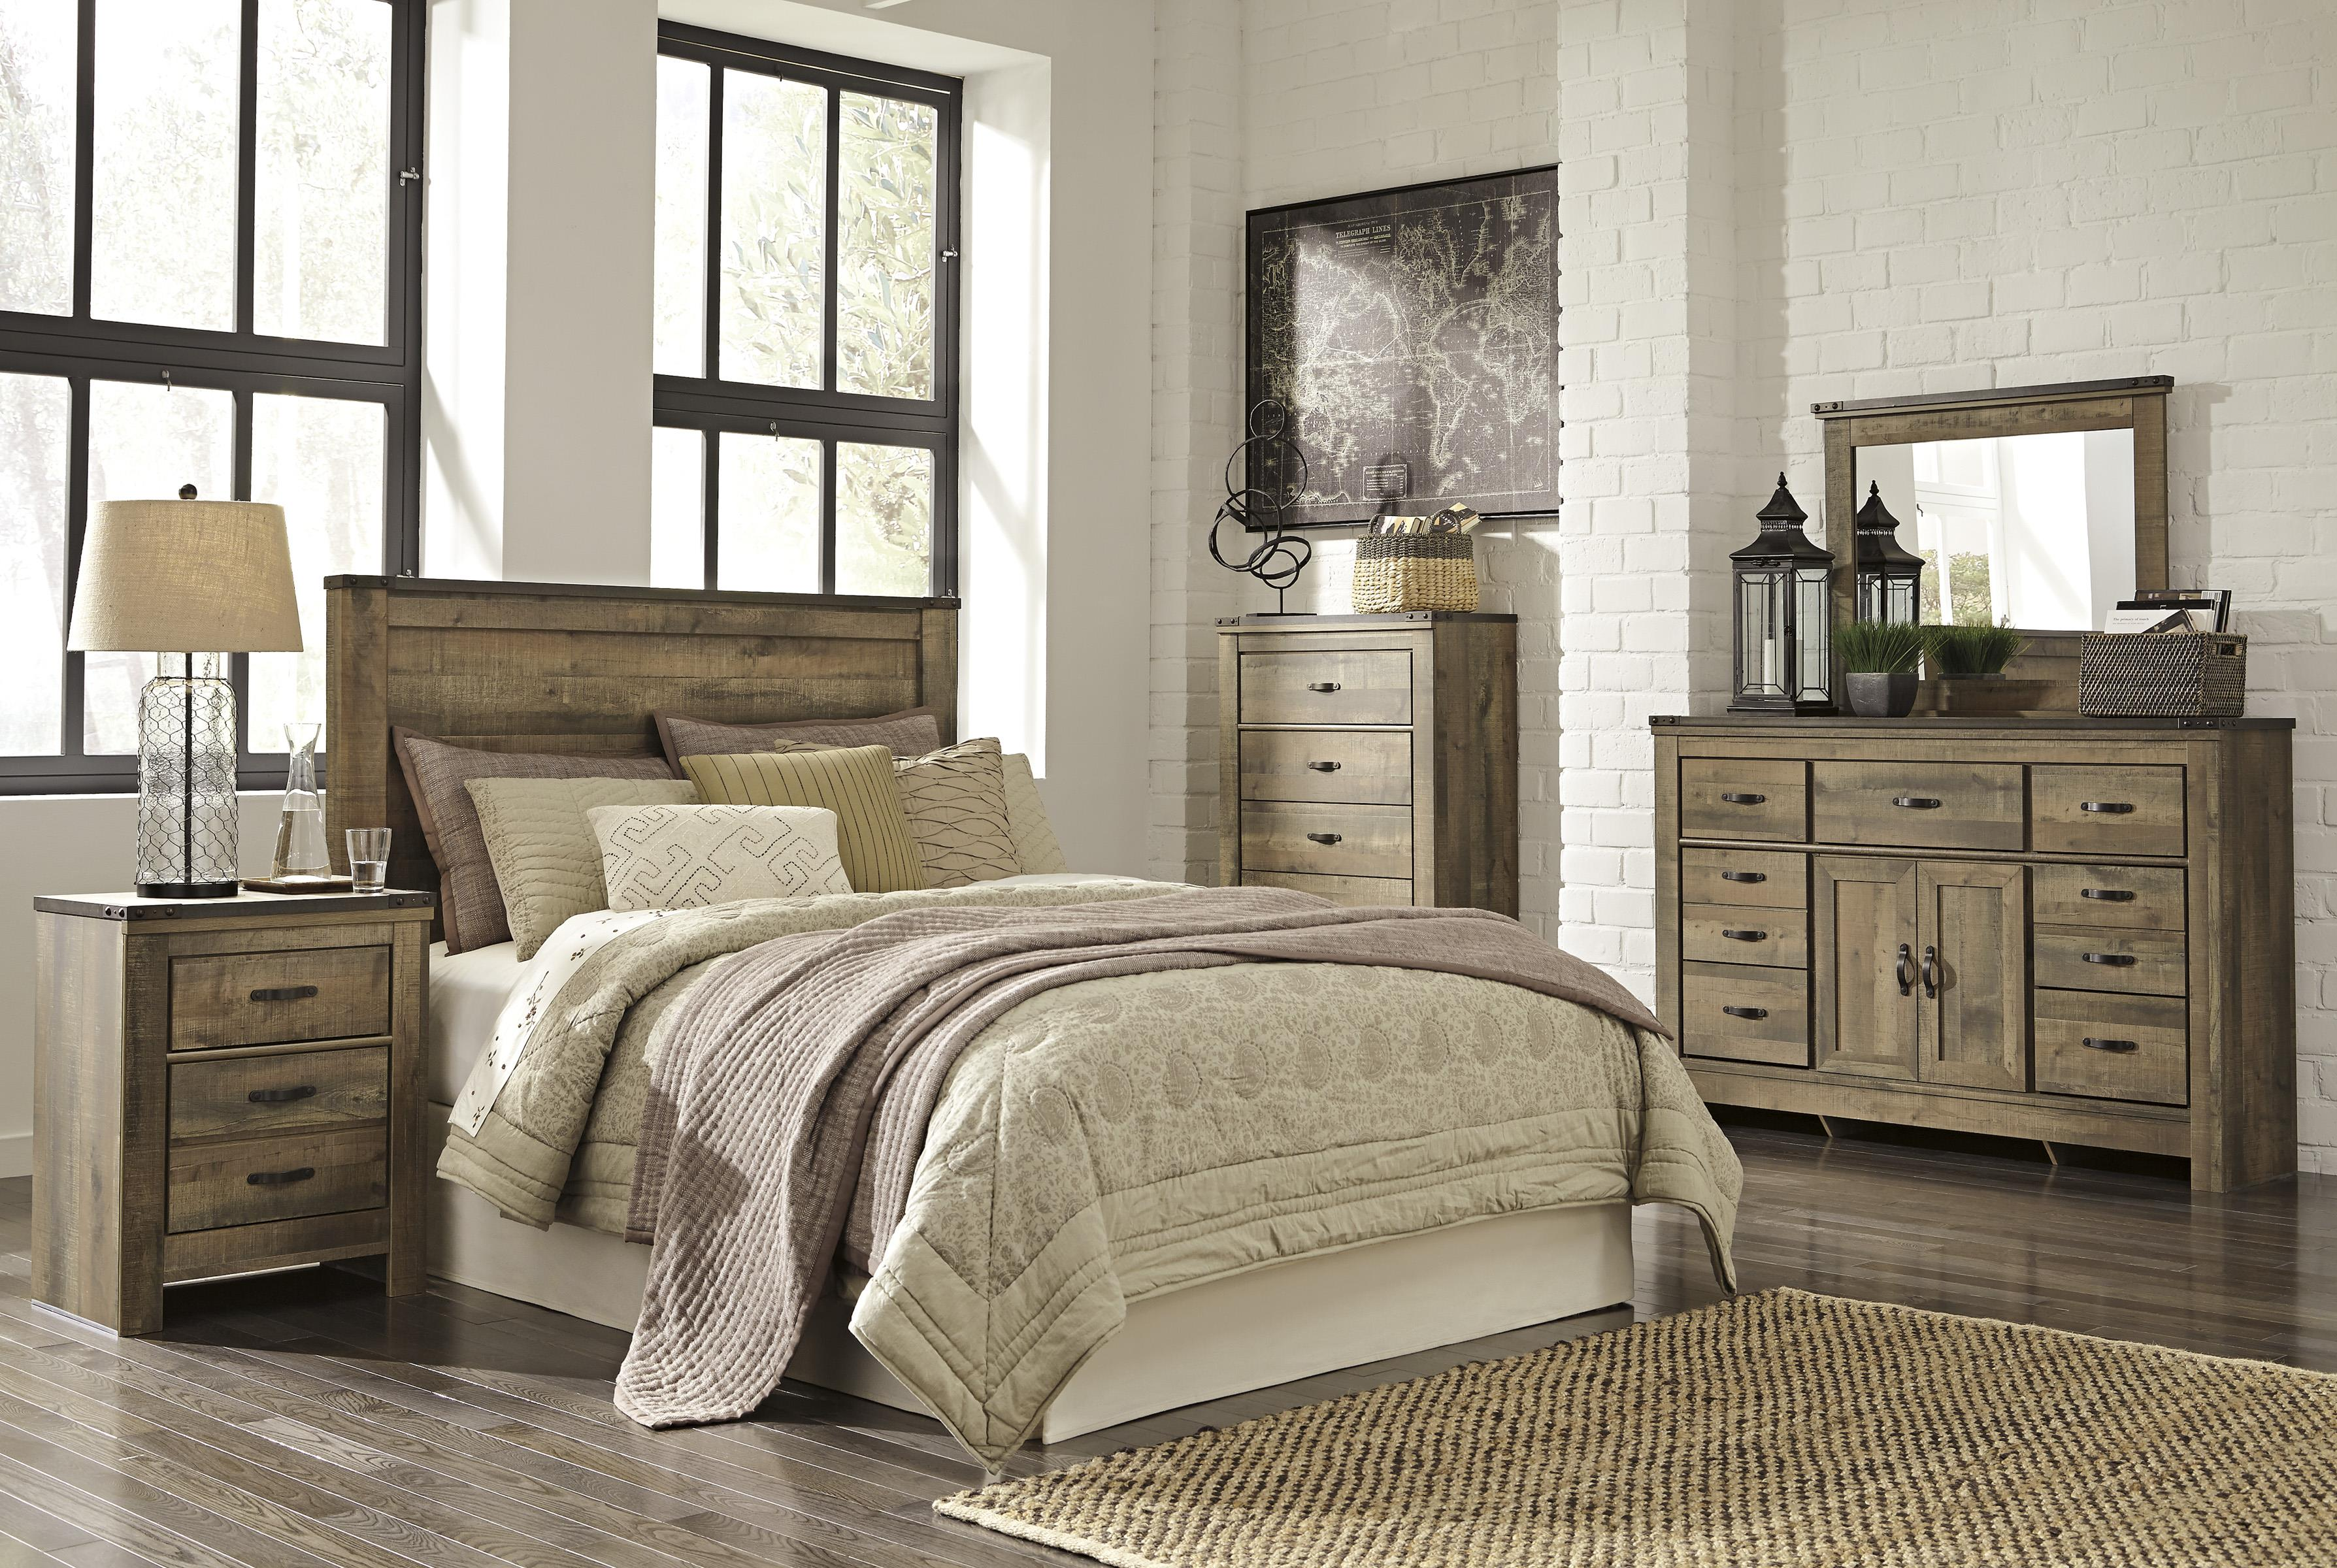 trinell b446 by signature design by ashley del sol furniture signature design by ashley. Black Bedroom Furniture Sets. Home Design Ideas